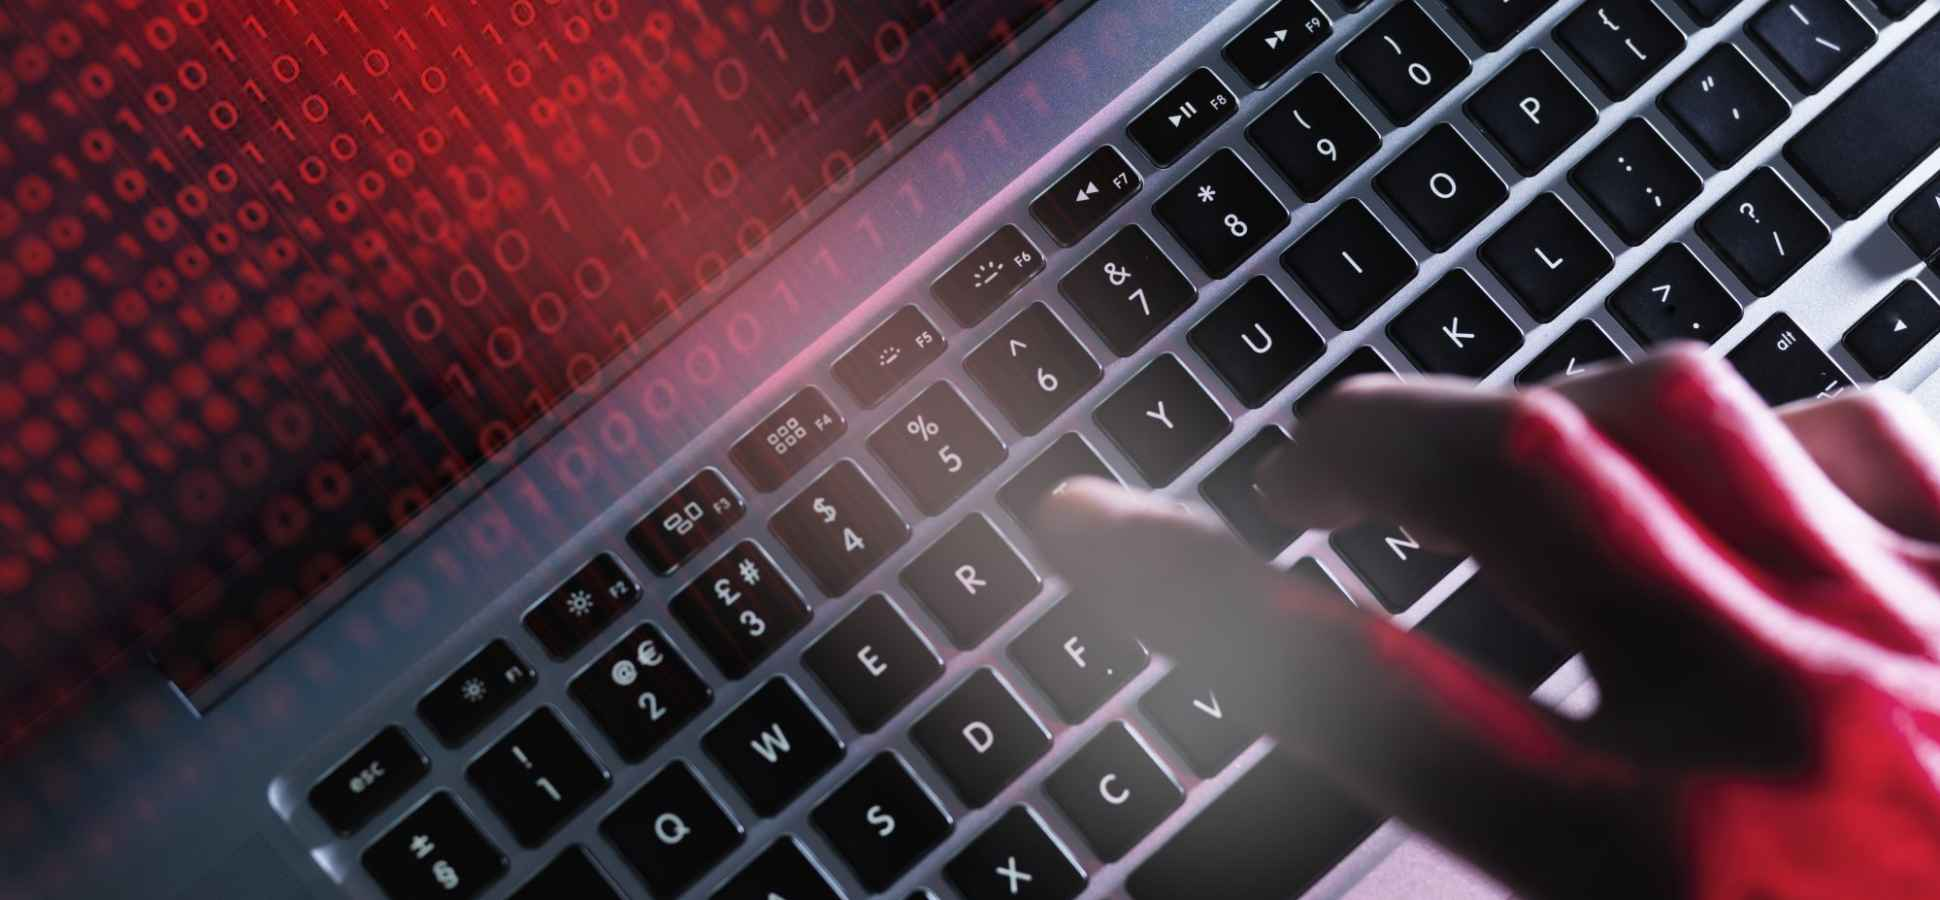 Why You Need to Know About This Nigerian Hacker Ring Targeting Small ...